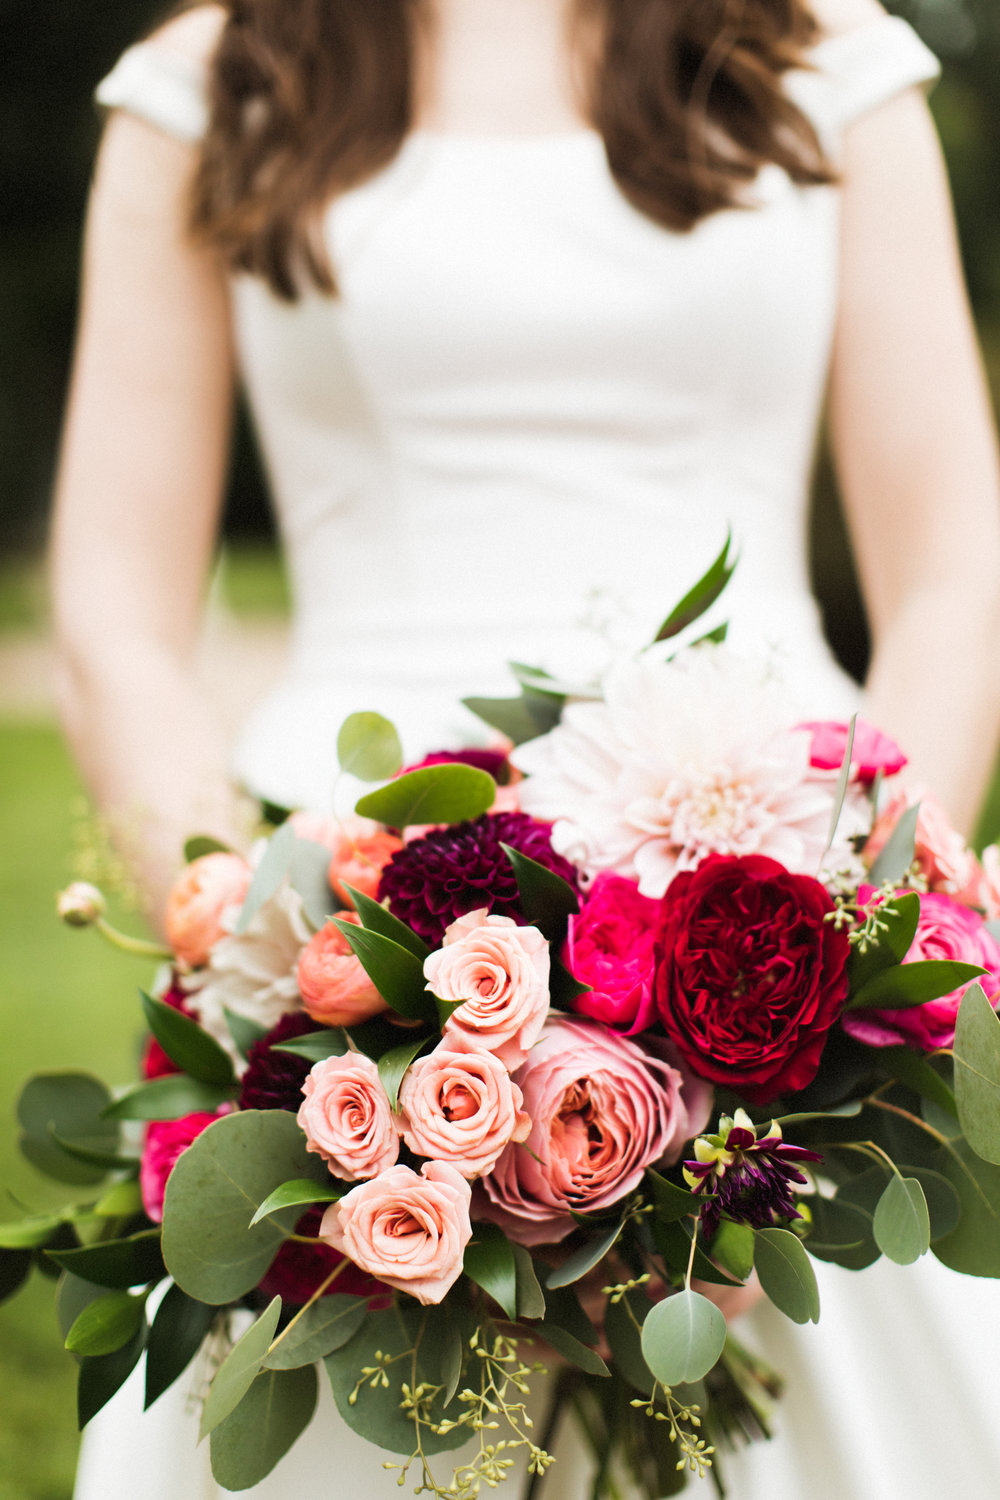 Bouquet De Fleur Pour St Valentin wedding flowers and decor